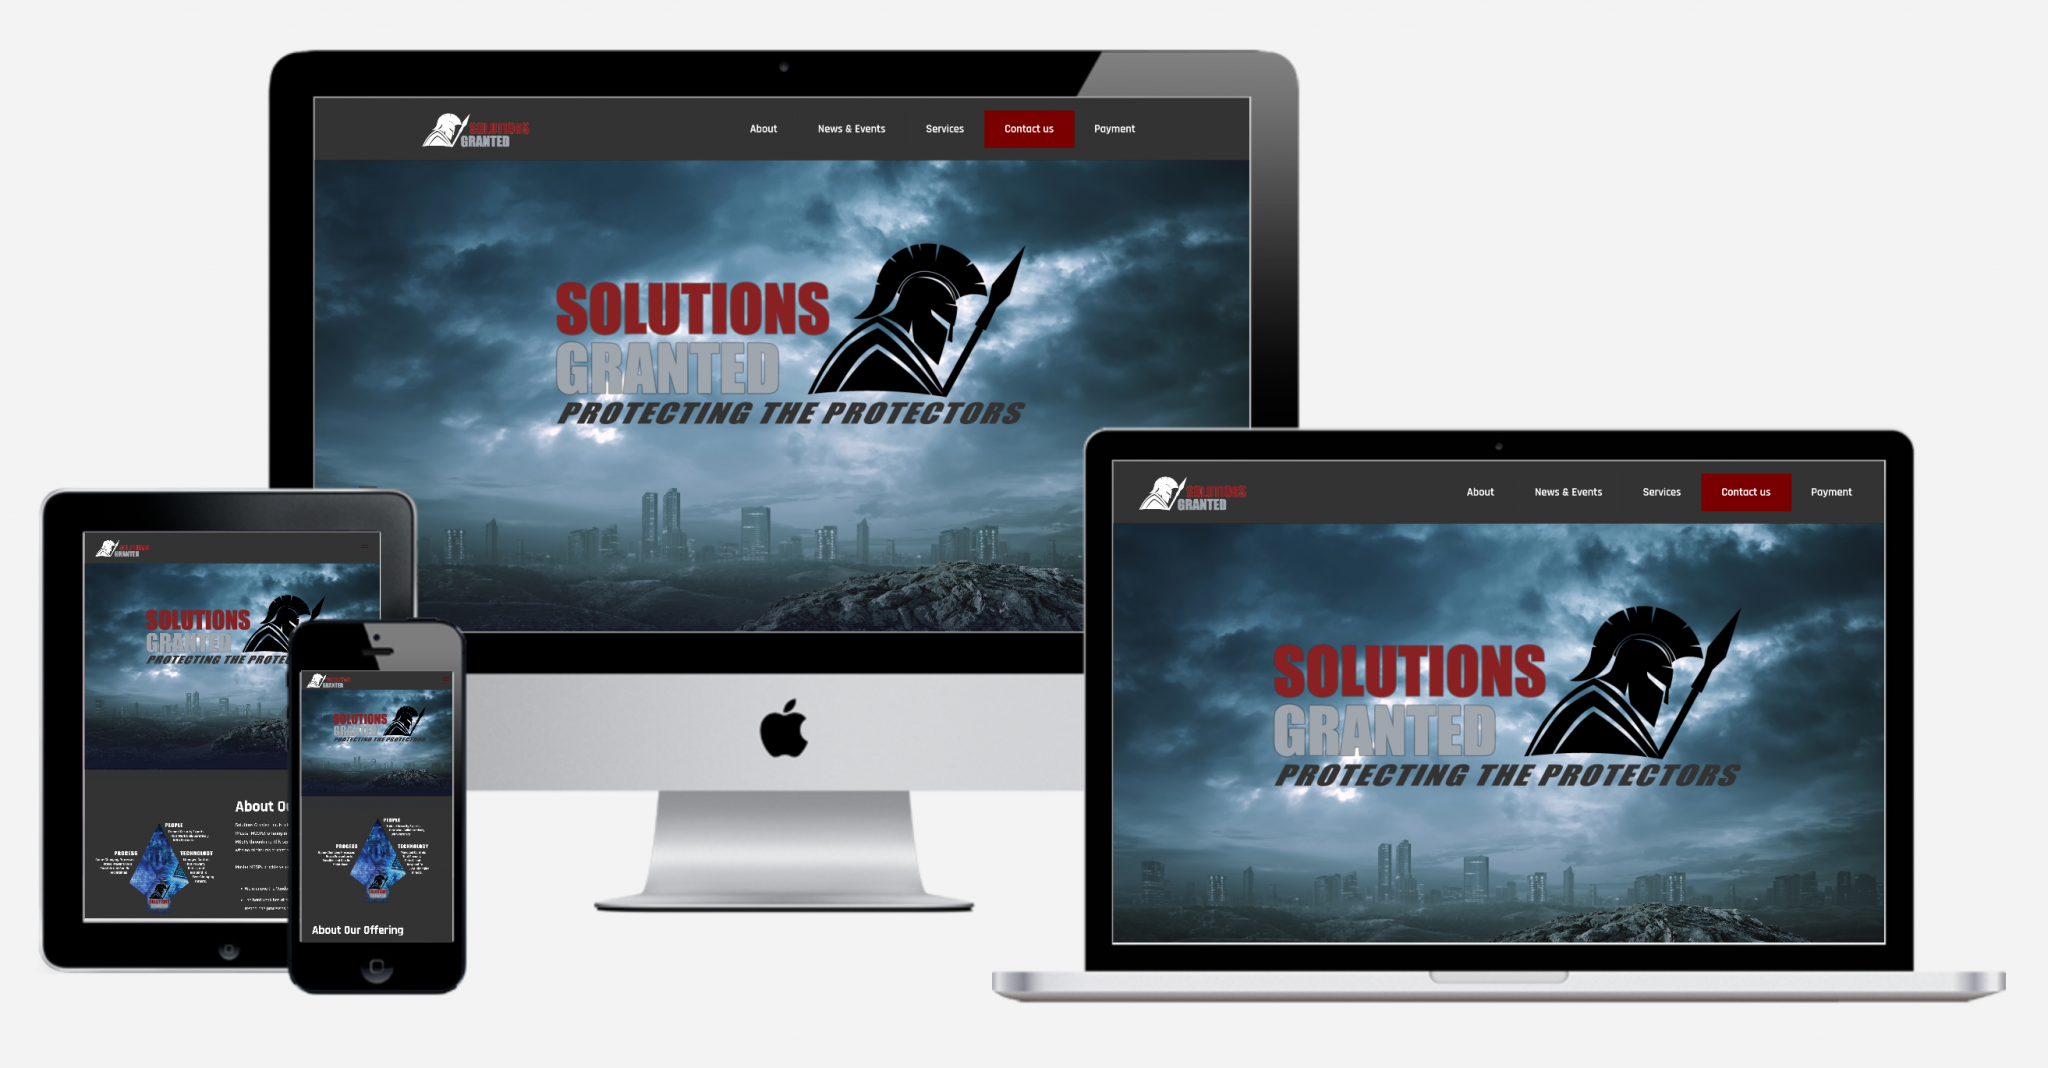 Solutions Granted - IT Company